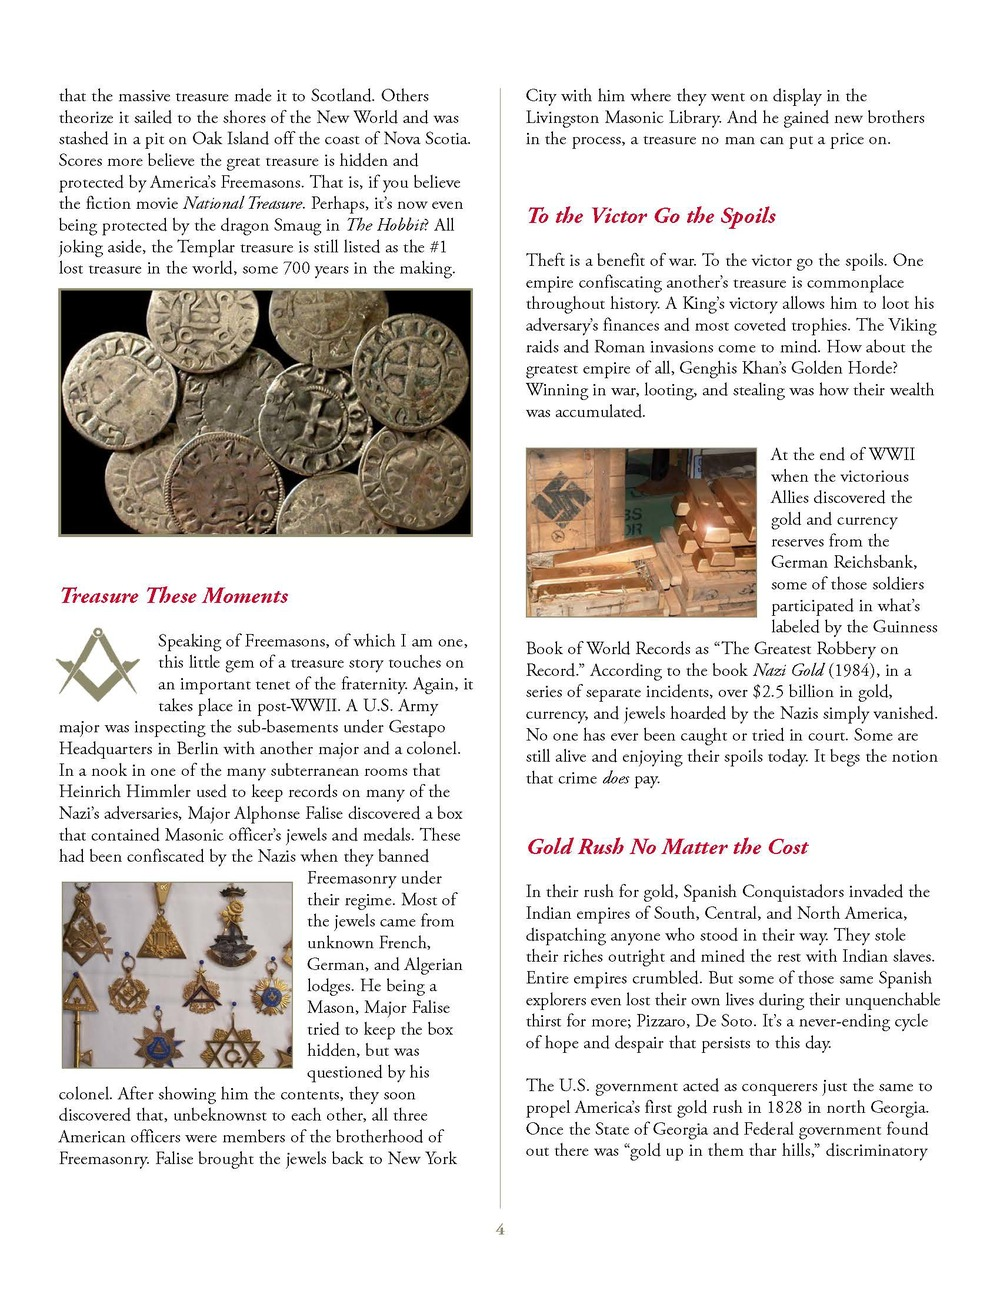 Finding-Treasure-article_Page_4.jpg